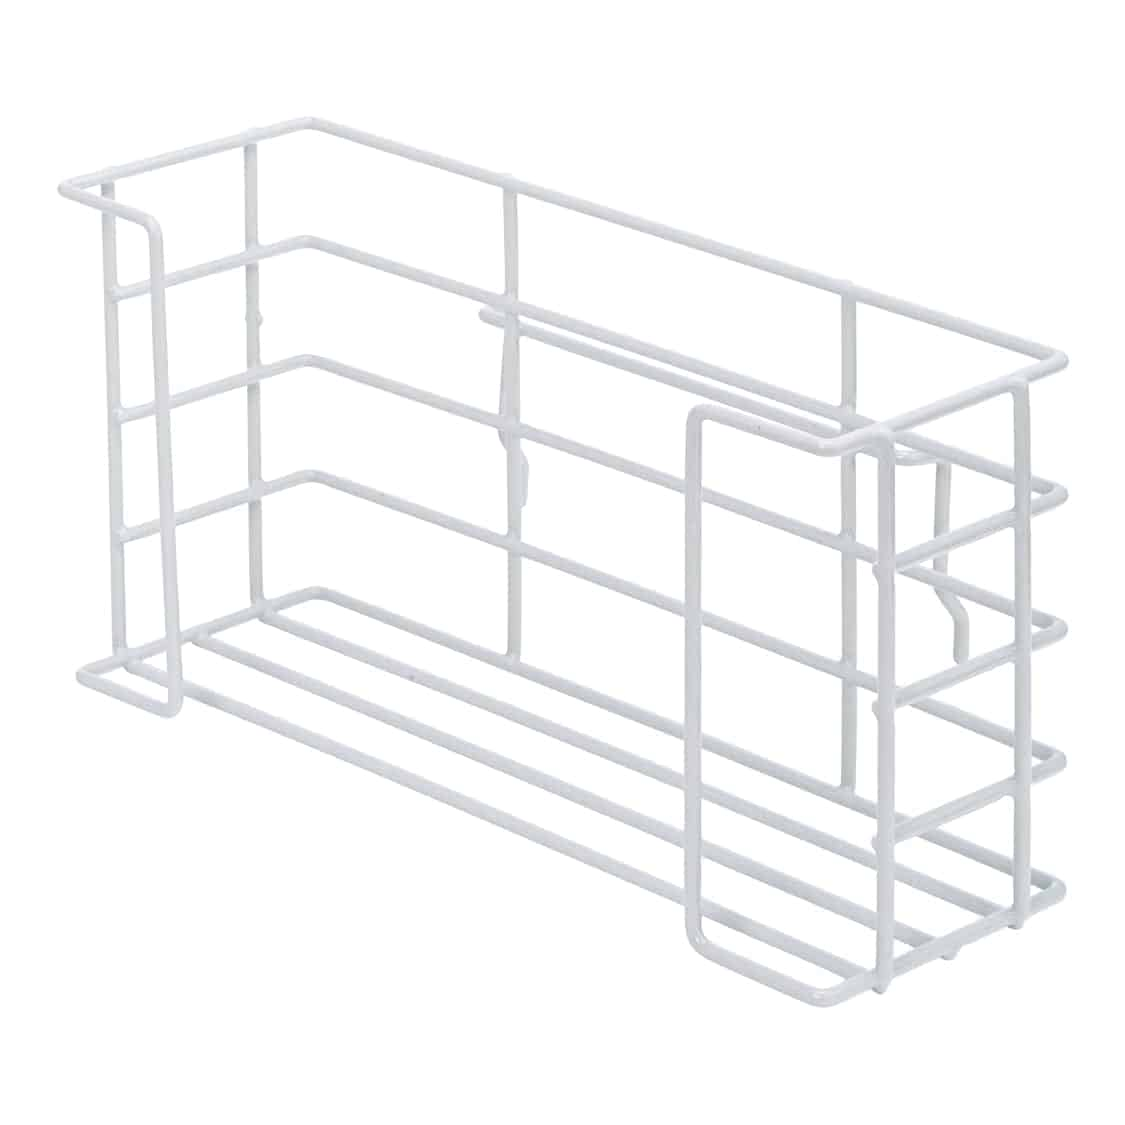 Medication Trolley Accessories